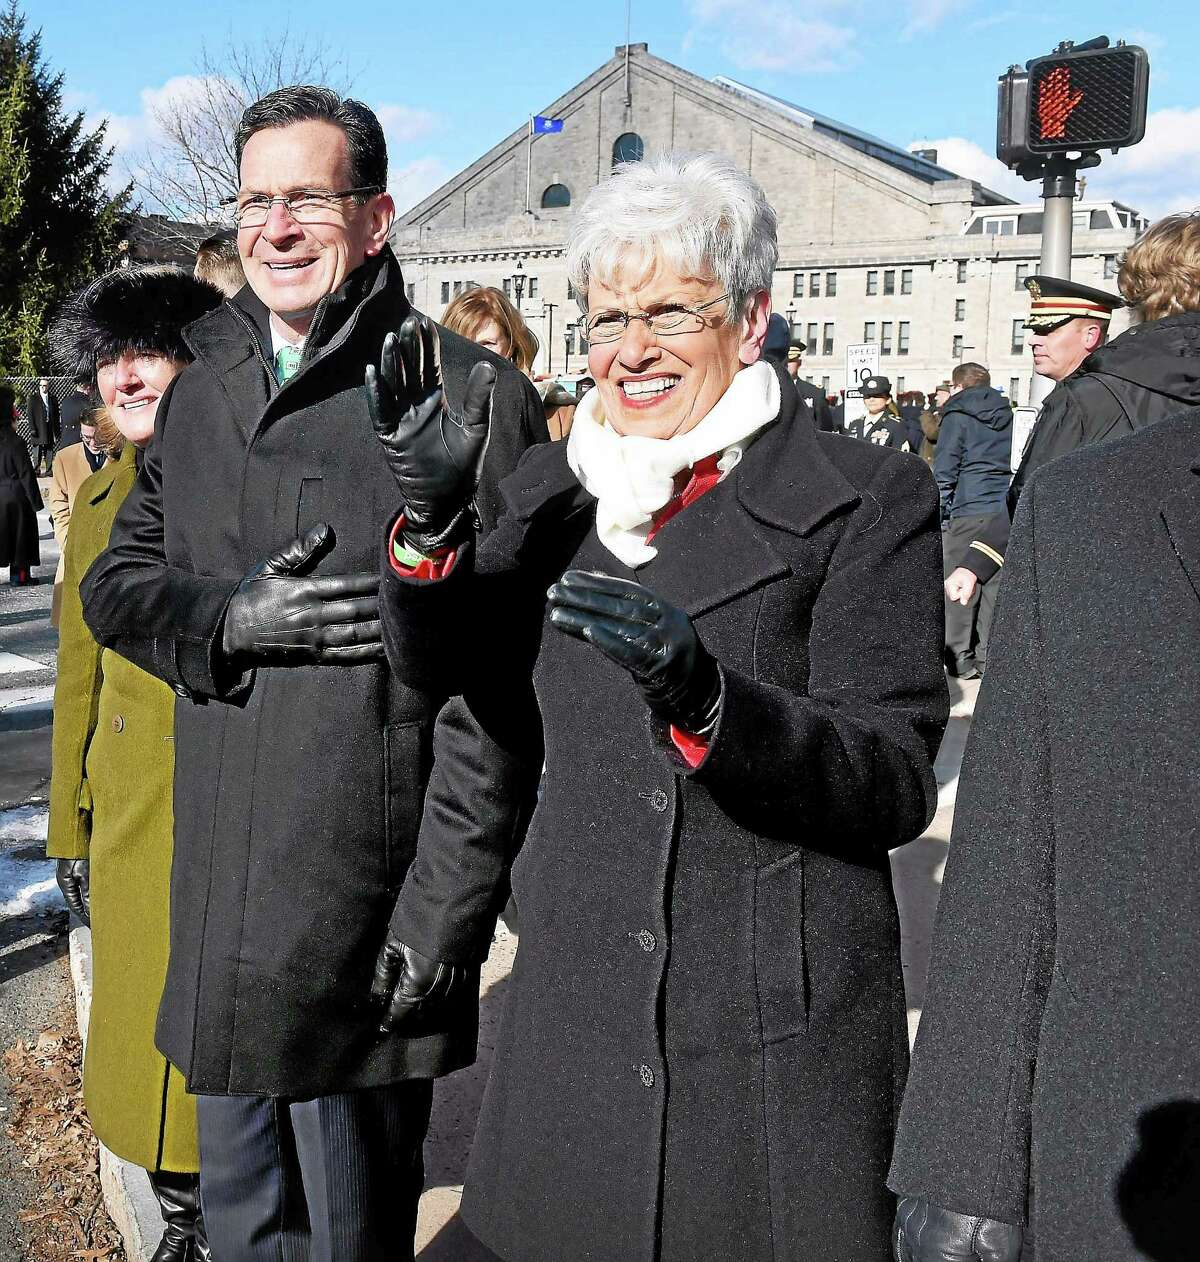 Governor Dannel P. Malloy (center) watches the Inaugural Parade with his wife, Catherine (left), and Lt. Governor Nancy Wyman (right) in front of the William A. O'Neill State Armory in Hartford on 1/7/2015.